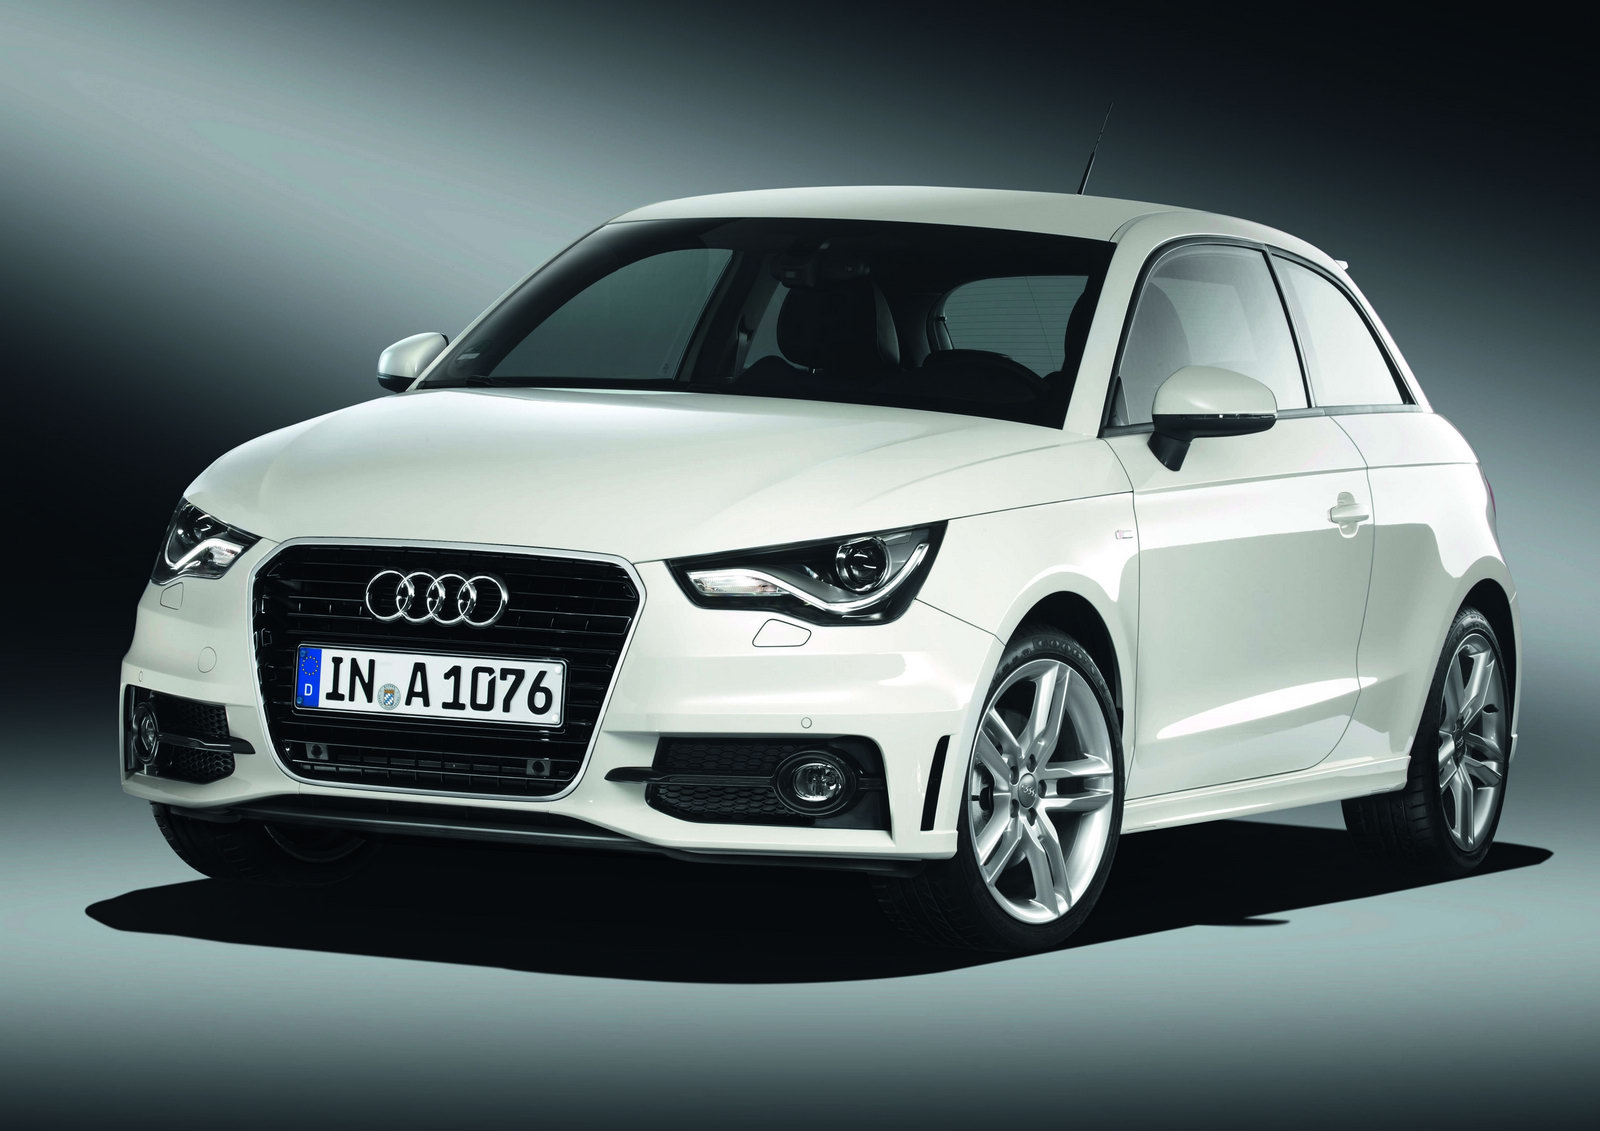 Audi A1 1 4 Tfsi 185 Hp Test Drive Car Report Daily